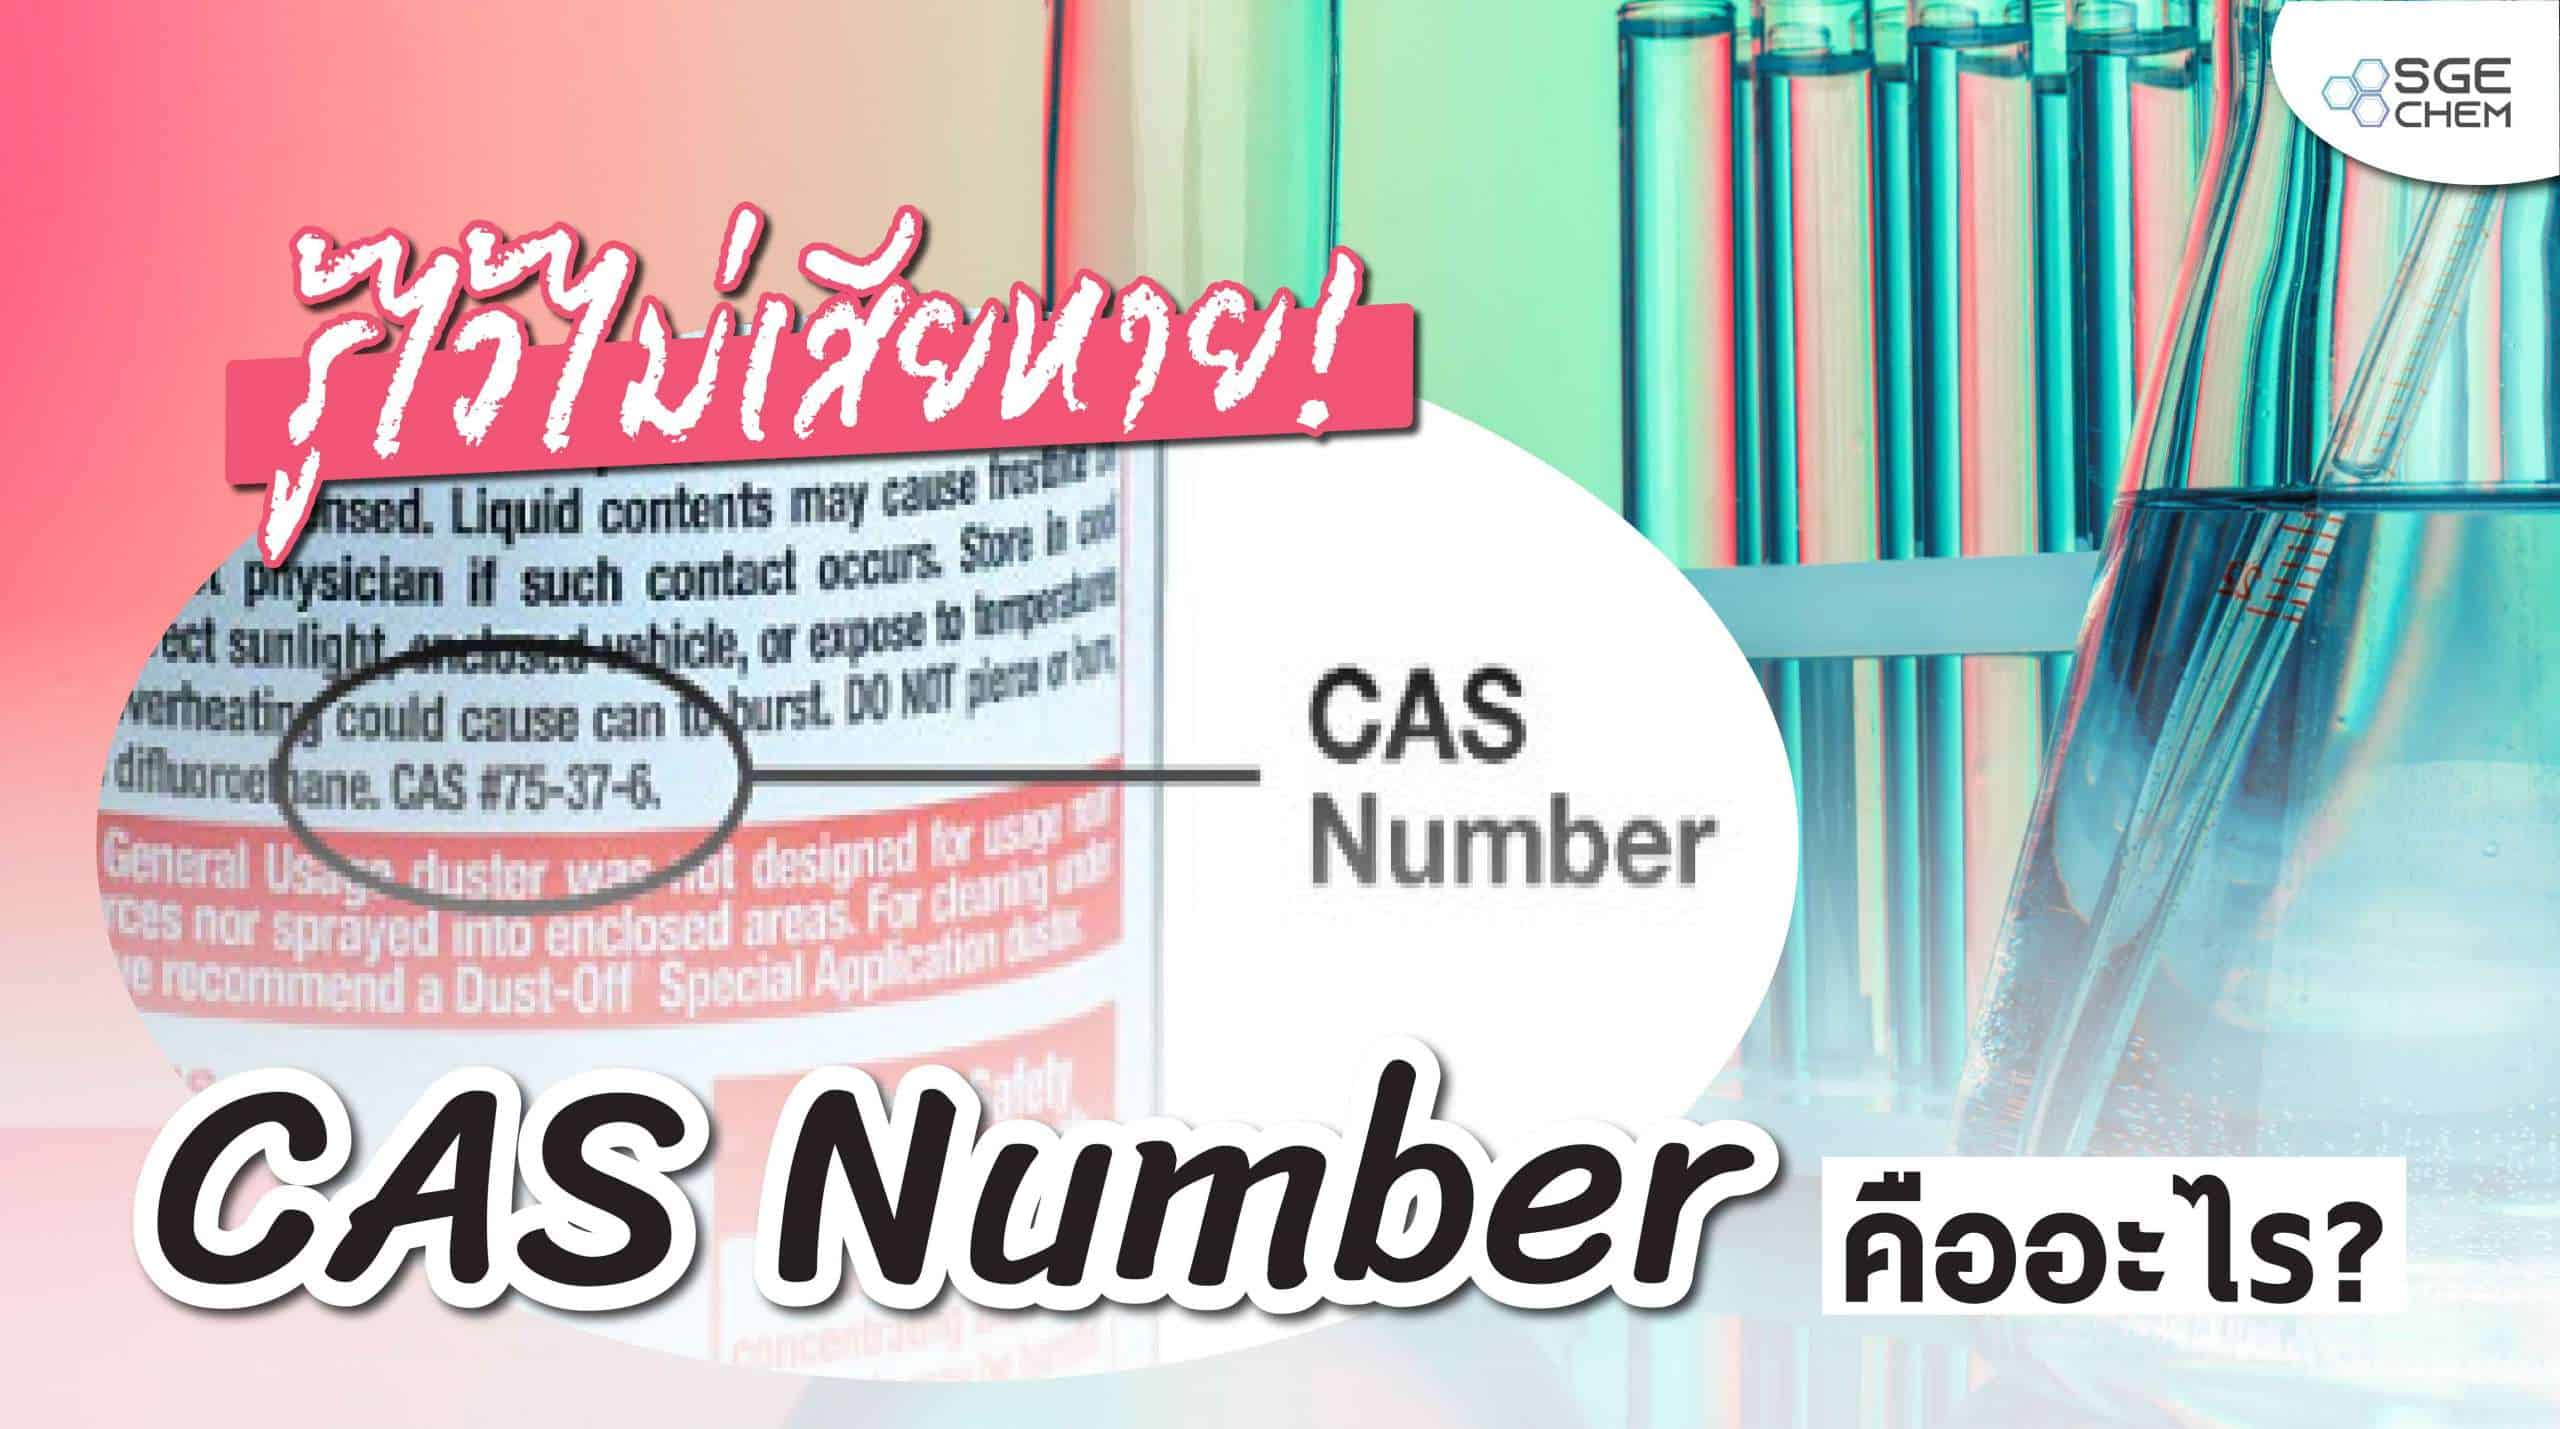 210210-Content-CAS-Number-ของสารเคมีคืออะไร-01